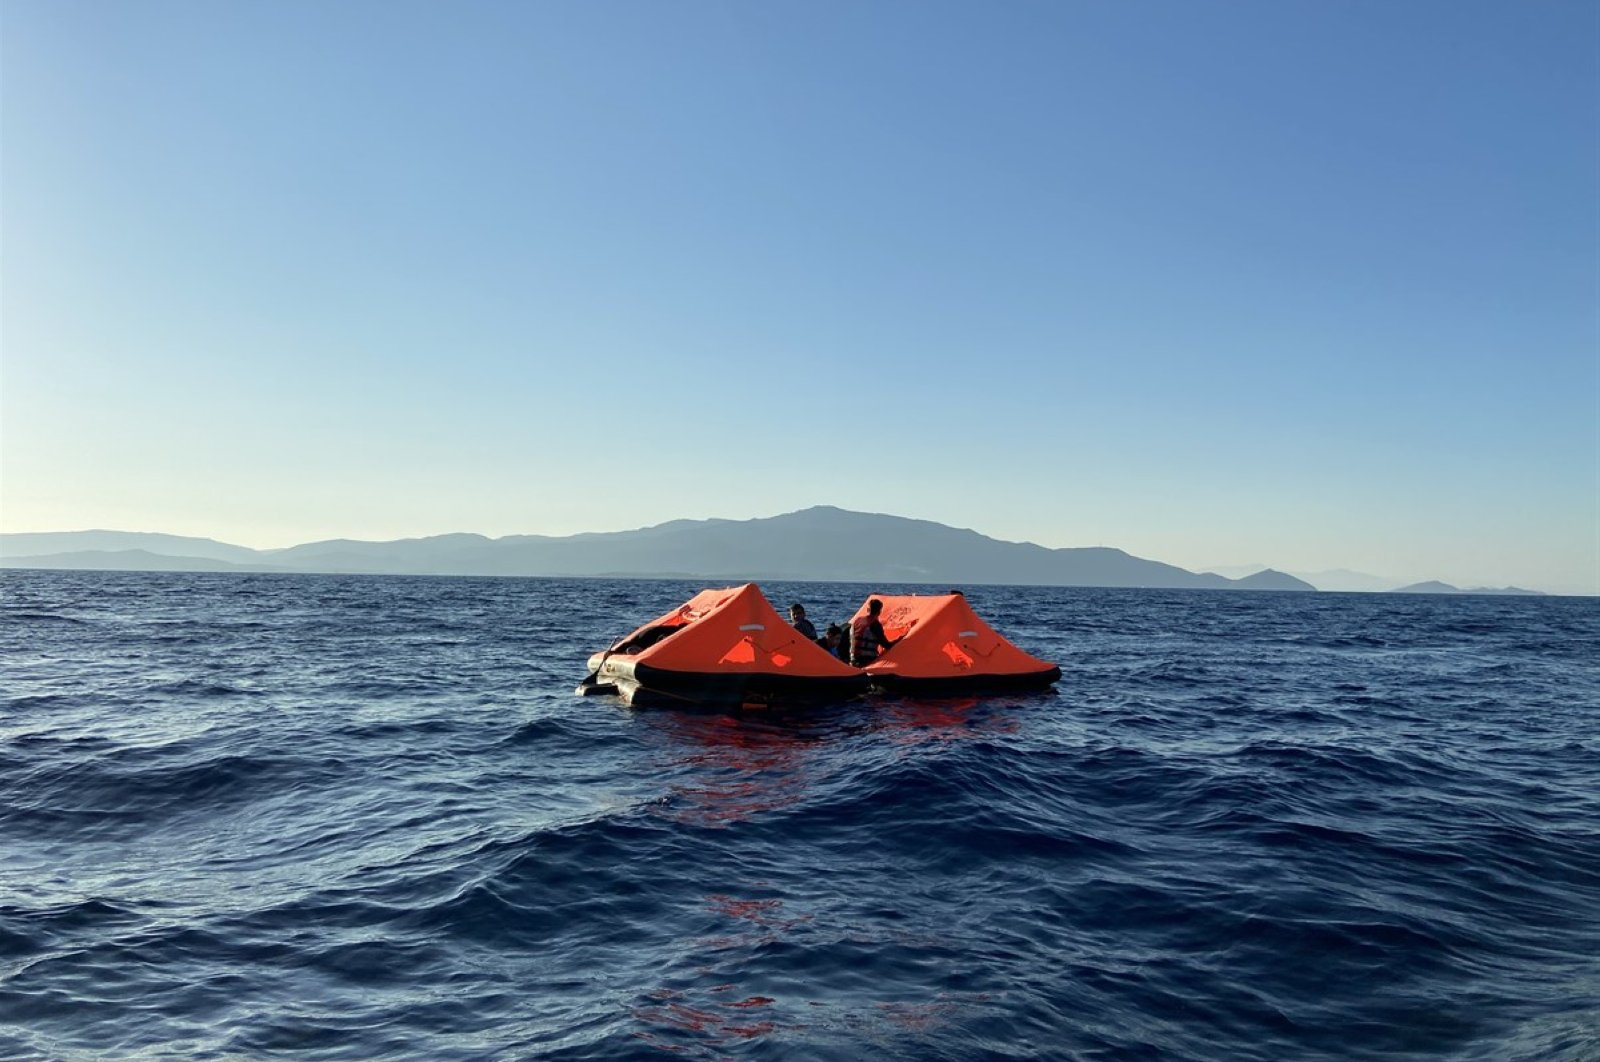 49 asylum-seekers in two rubber rafts were rescued off the coast of the Dikili district in the western province of Izmir, Turkey, July 1, 2020. (AA Photo)